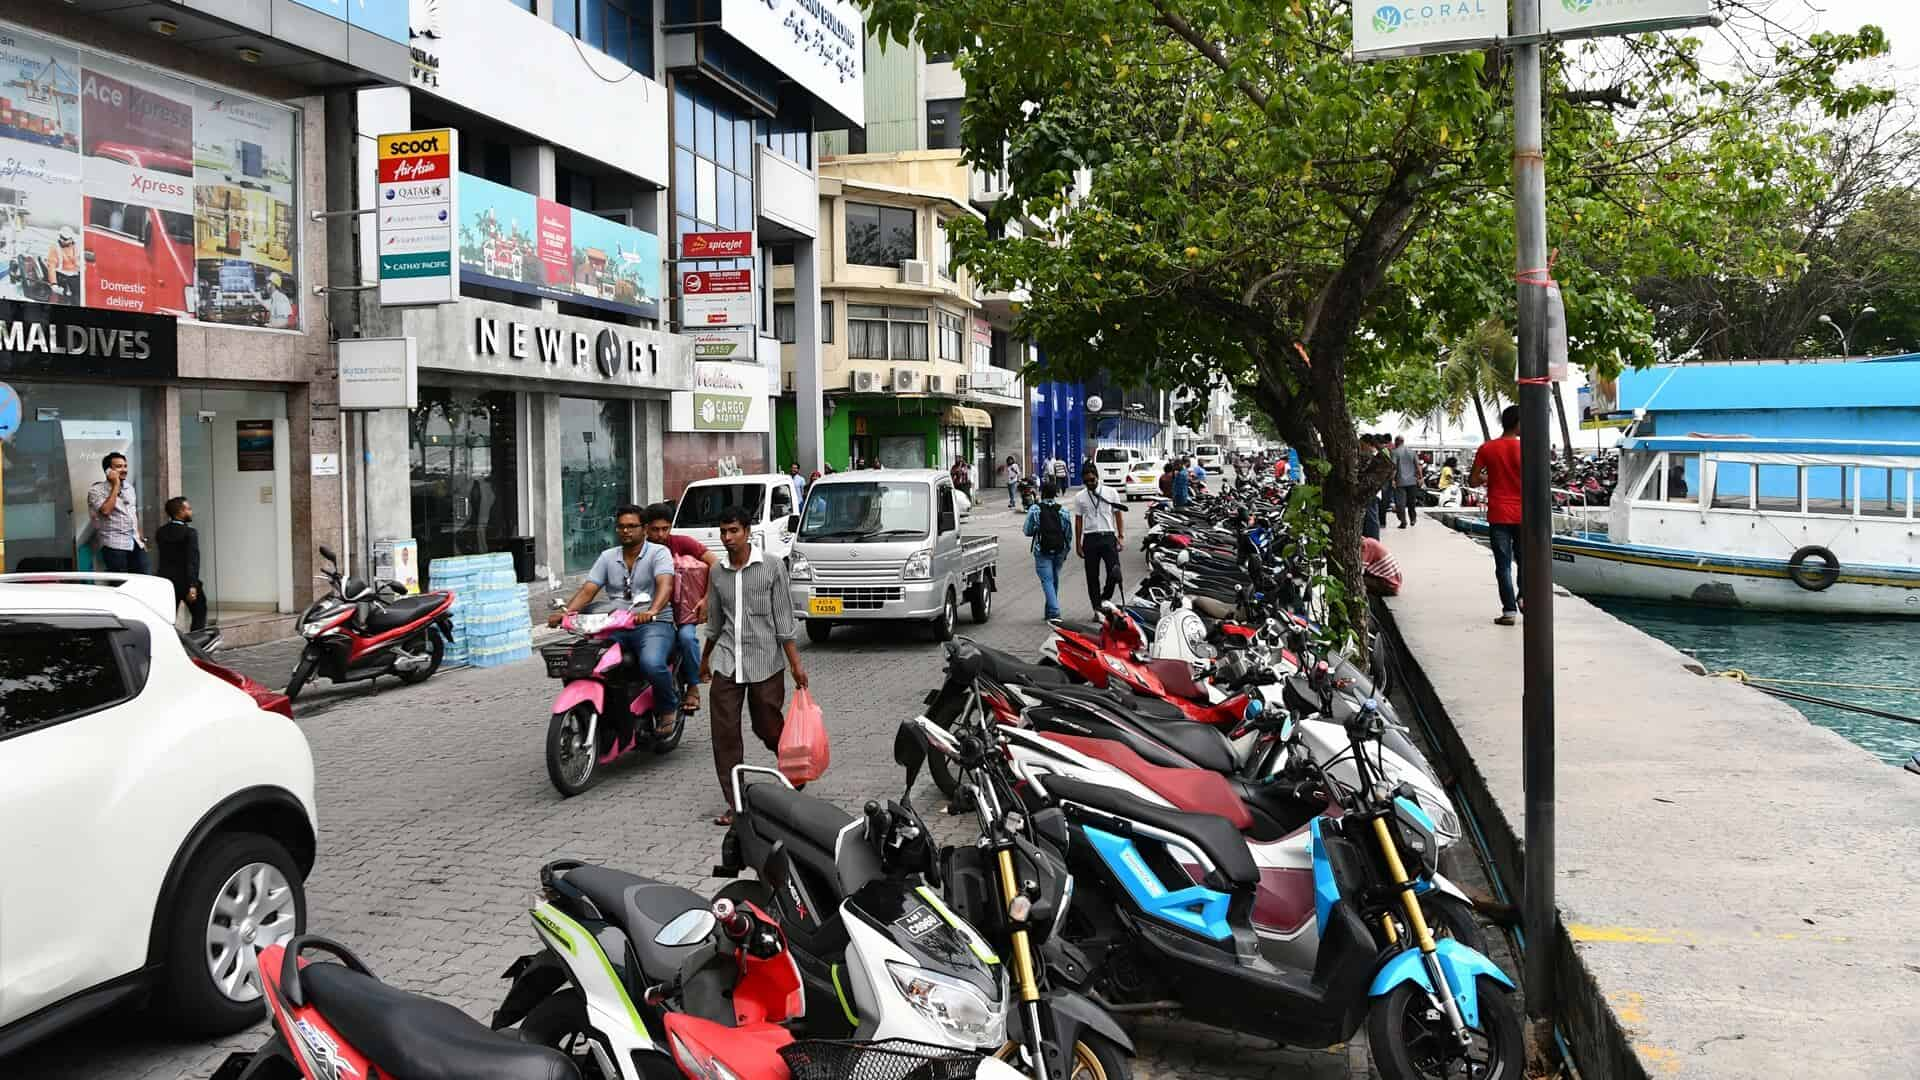 The capital of the Maldives is Male